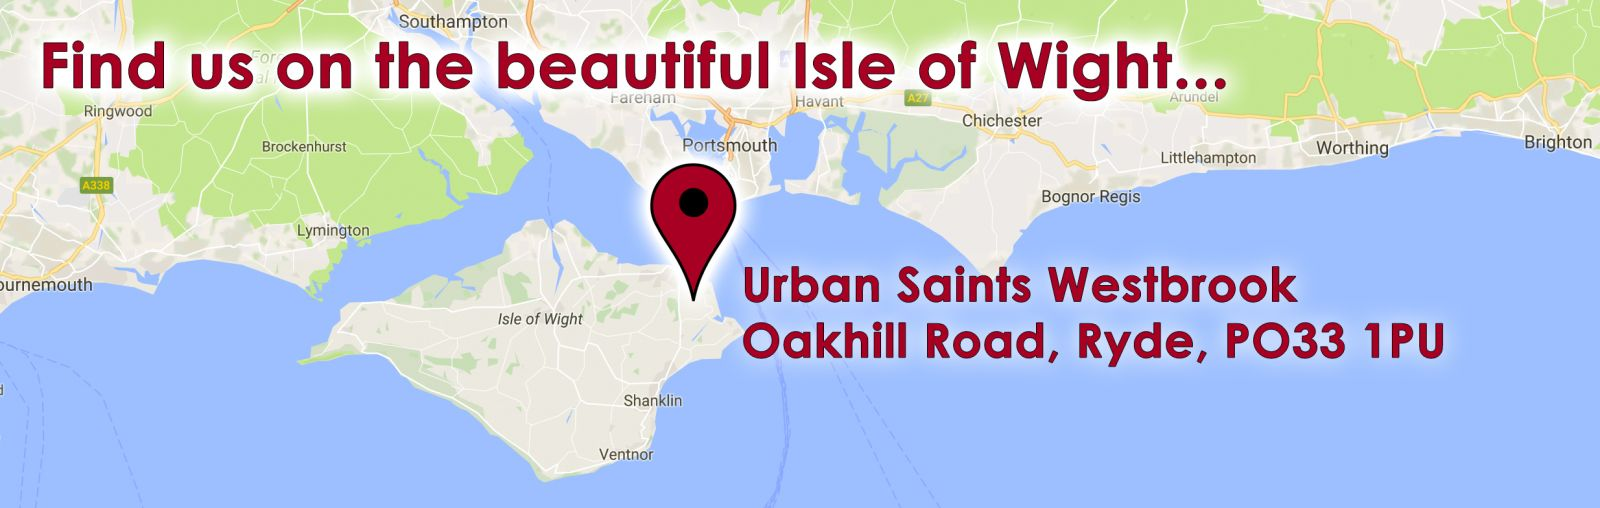 Find us on the beautiful Isle of Wight...